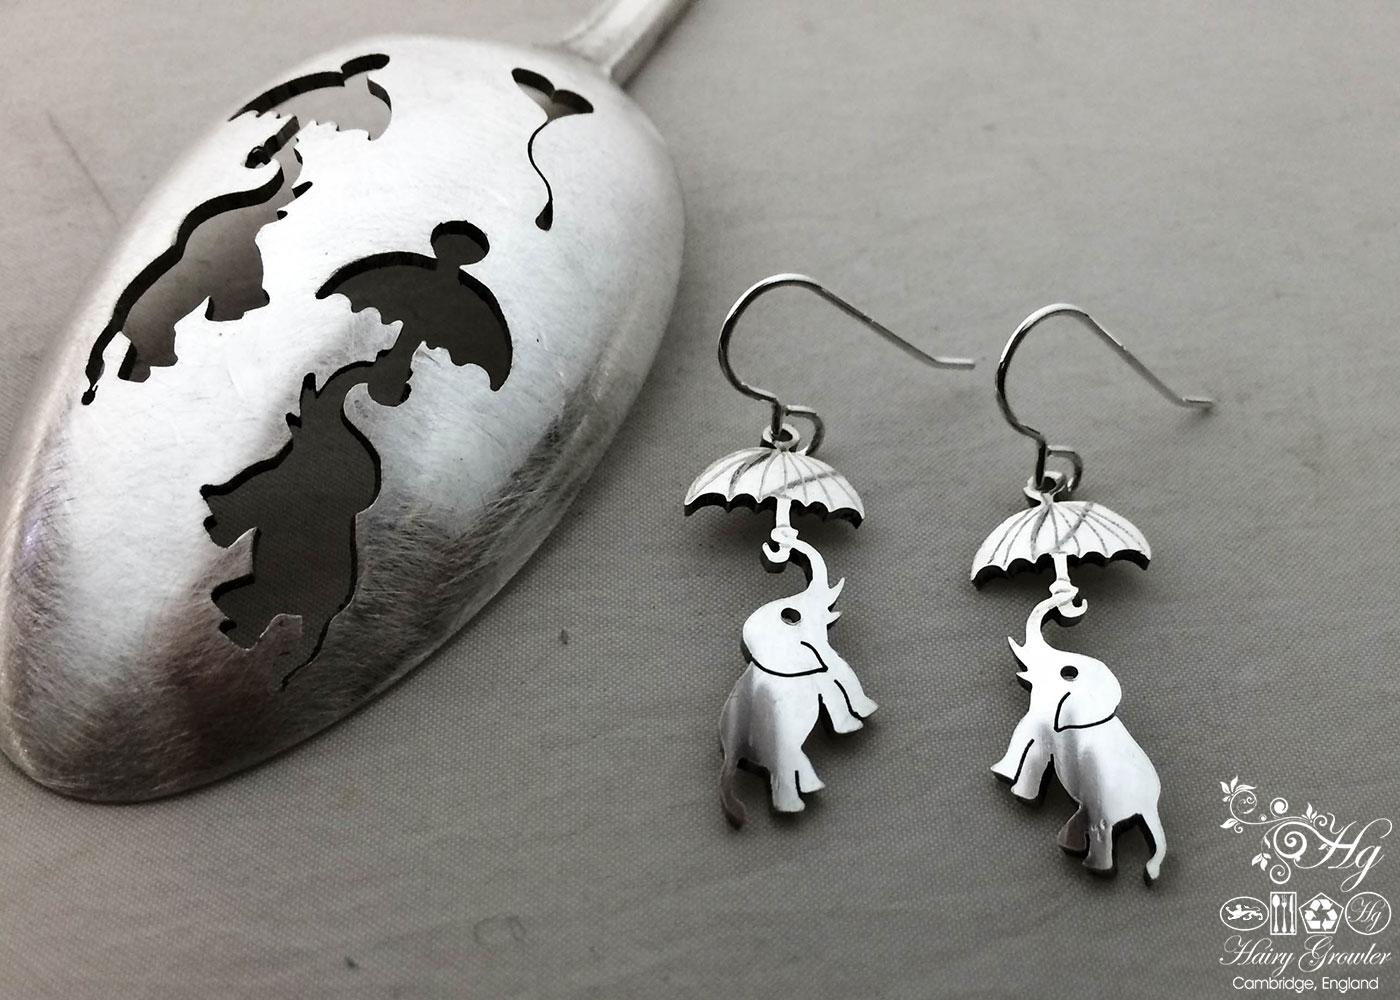 handcrafted and repurposed spoon flying elephant earrings